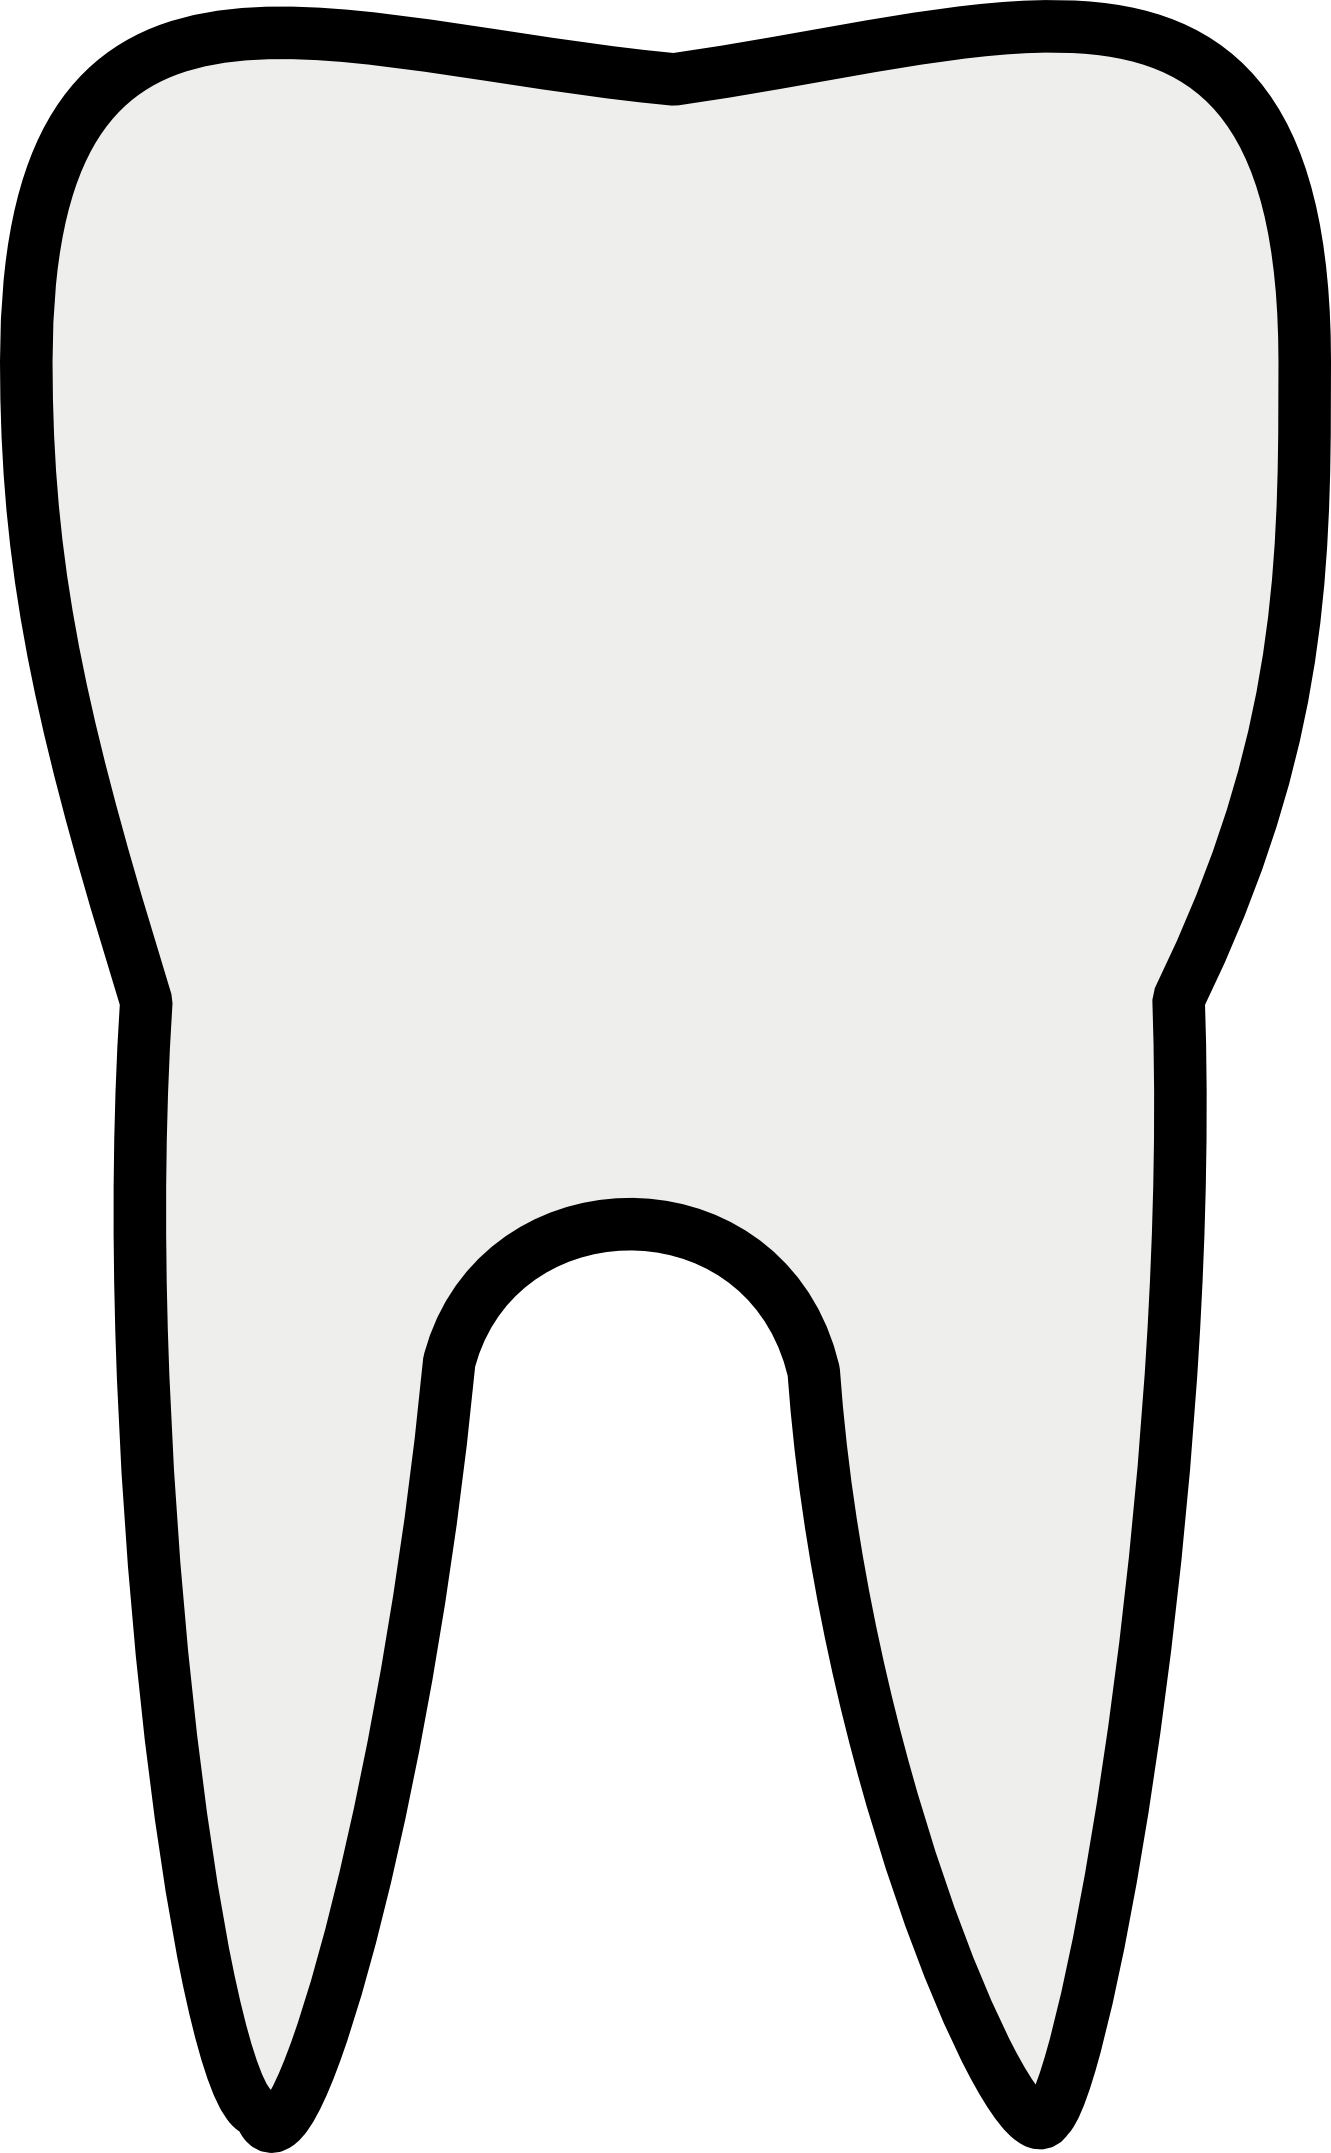 Teeth Clipart Black And White - White Clip Art